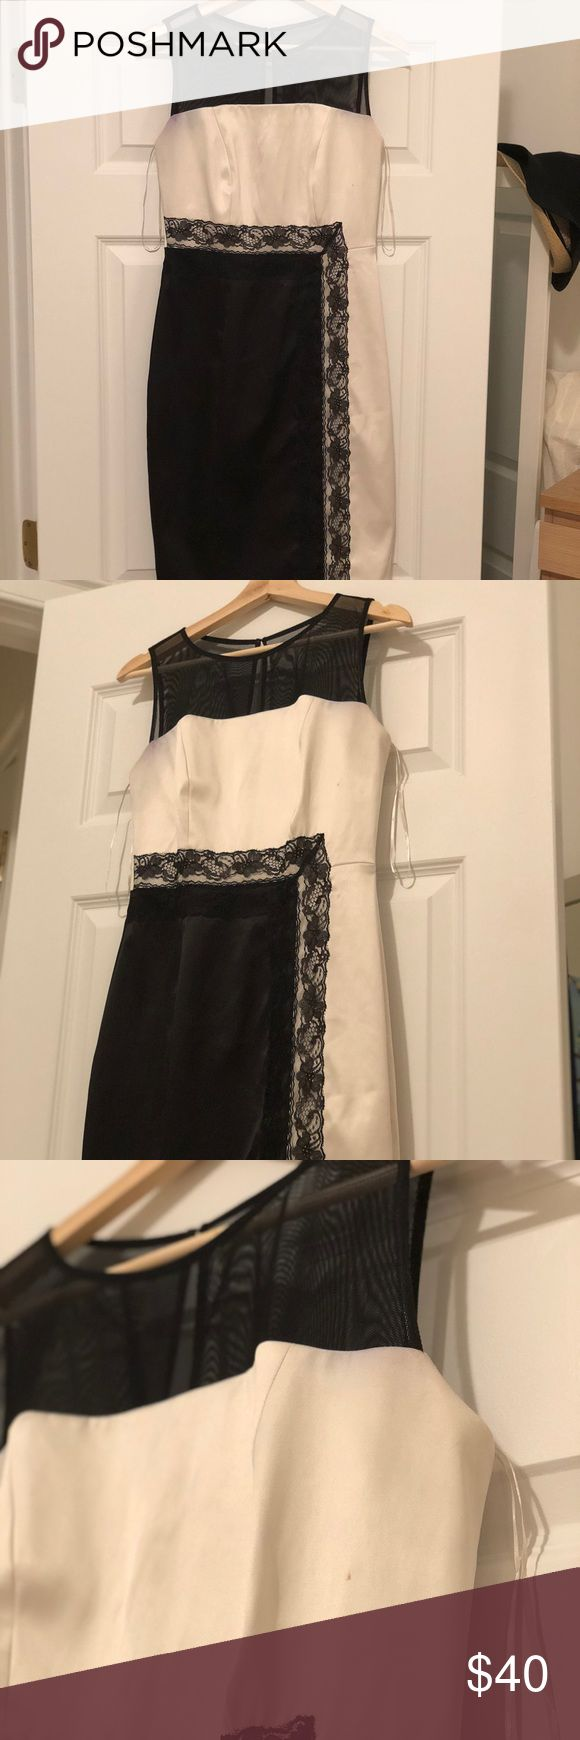 """Colorblock Satin and Lace Cocktail Dress Ivory satin, lace detail, illusion mesh neckline Approximately 37"""" shoulder to hem Small discoloration on right arm and left chest Worn for wedding once, haven't worn since! Melrose Dresses"""